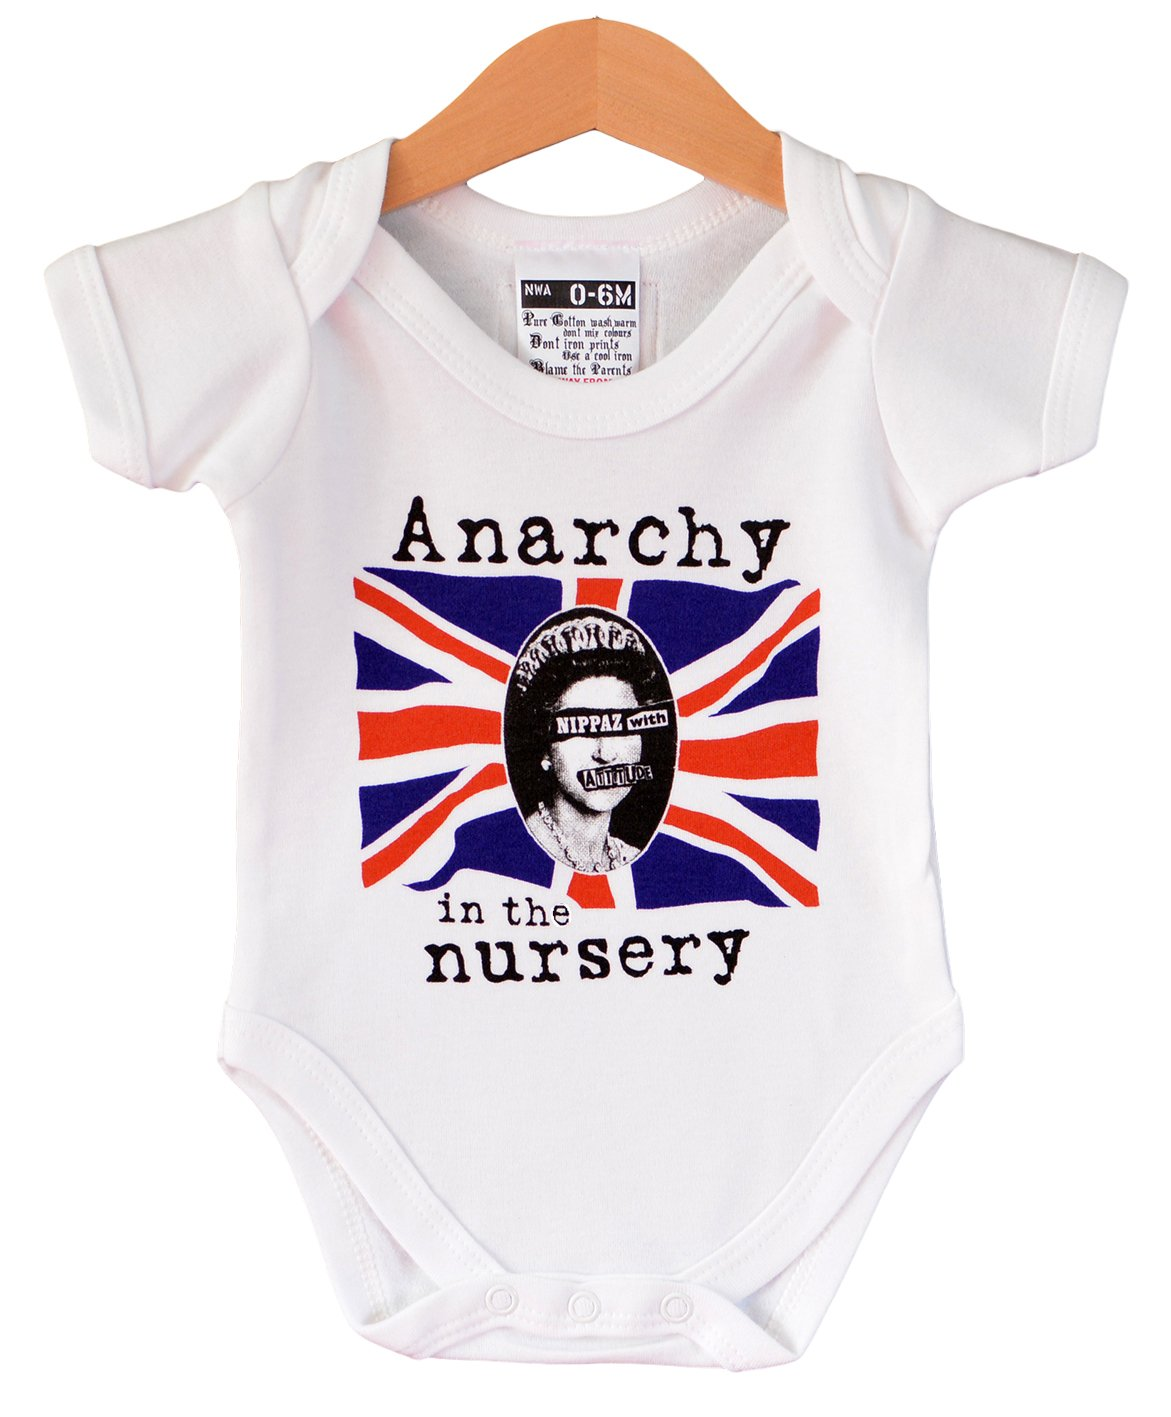 4dc4a140e7c5 Anarchy in the Nursery - Punk baby bodyvest. Cool gift for a baby ...